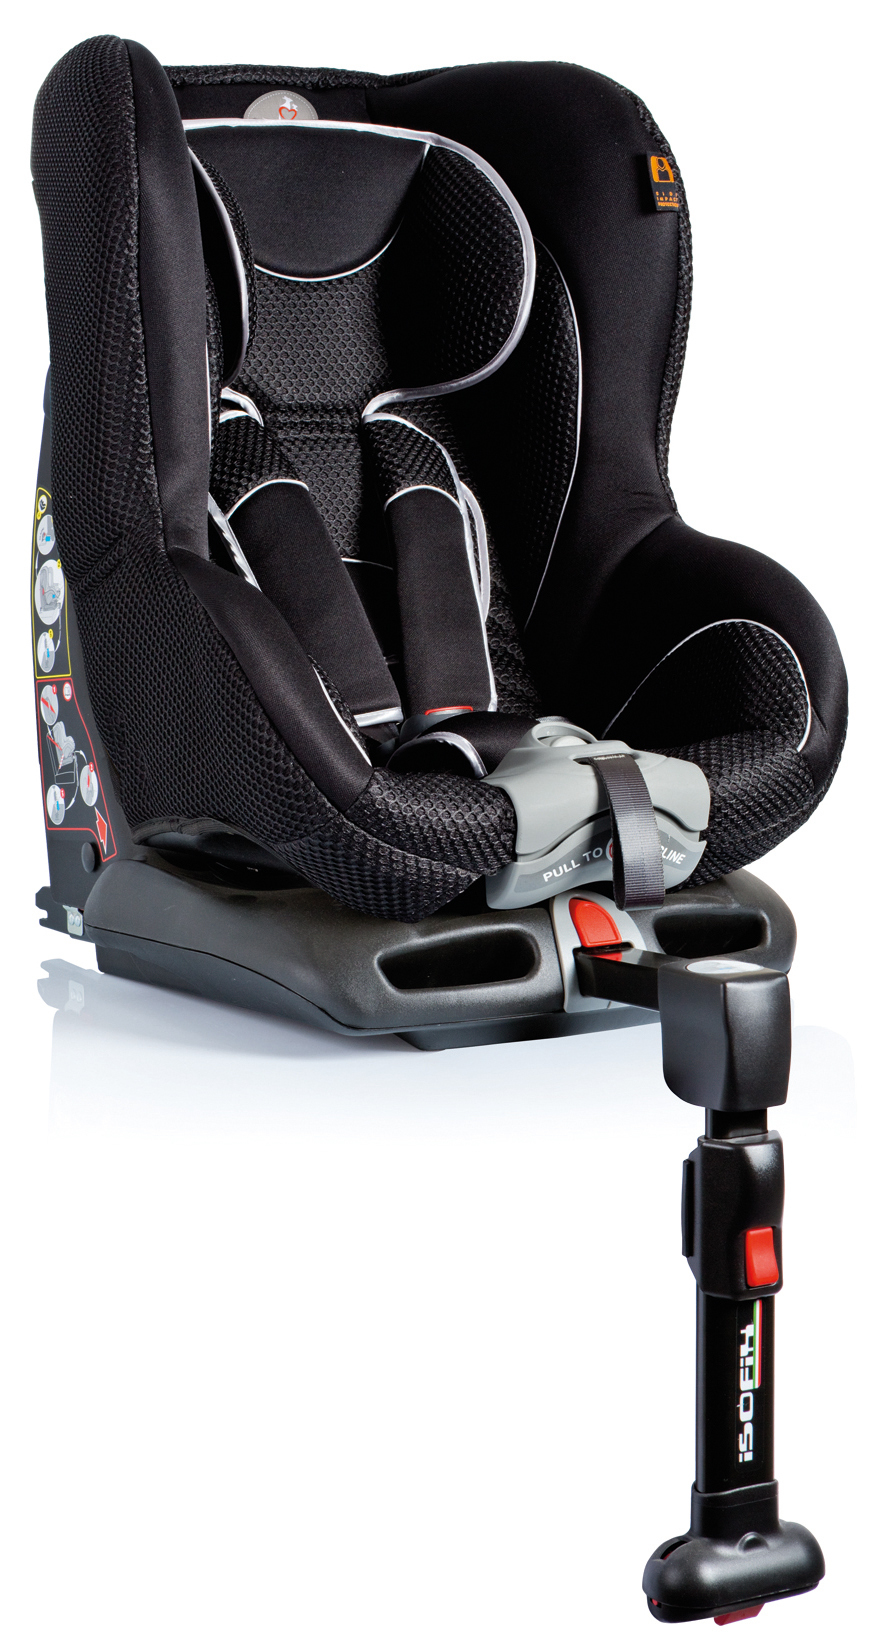 kindersitz autokindersitz kinderautositz mit isofix tiziano schwarz 9 18 kg. Black Bedroom Furniture Sets. Home Design Ideas